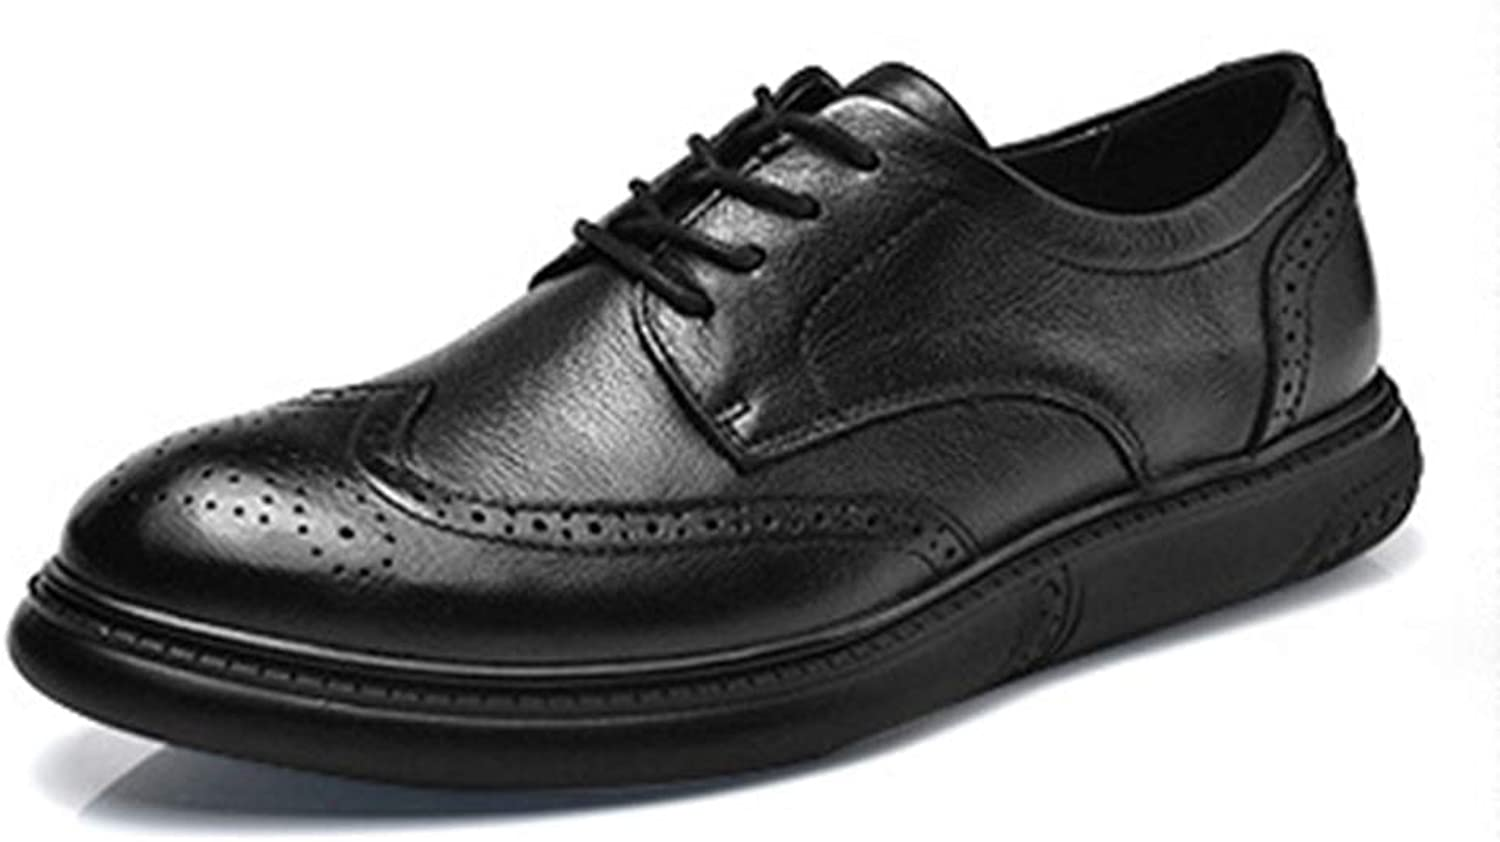 Phil Betty Mens Oxford shoes Lace Up Non-Slip Breathable Comfortable Business Dress shoes